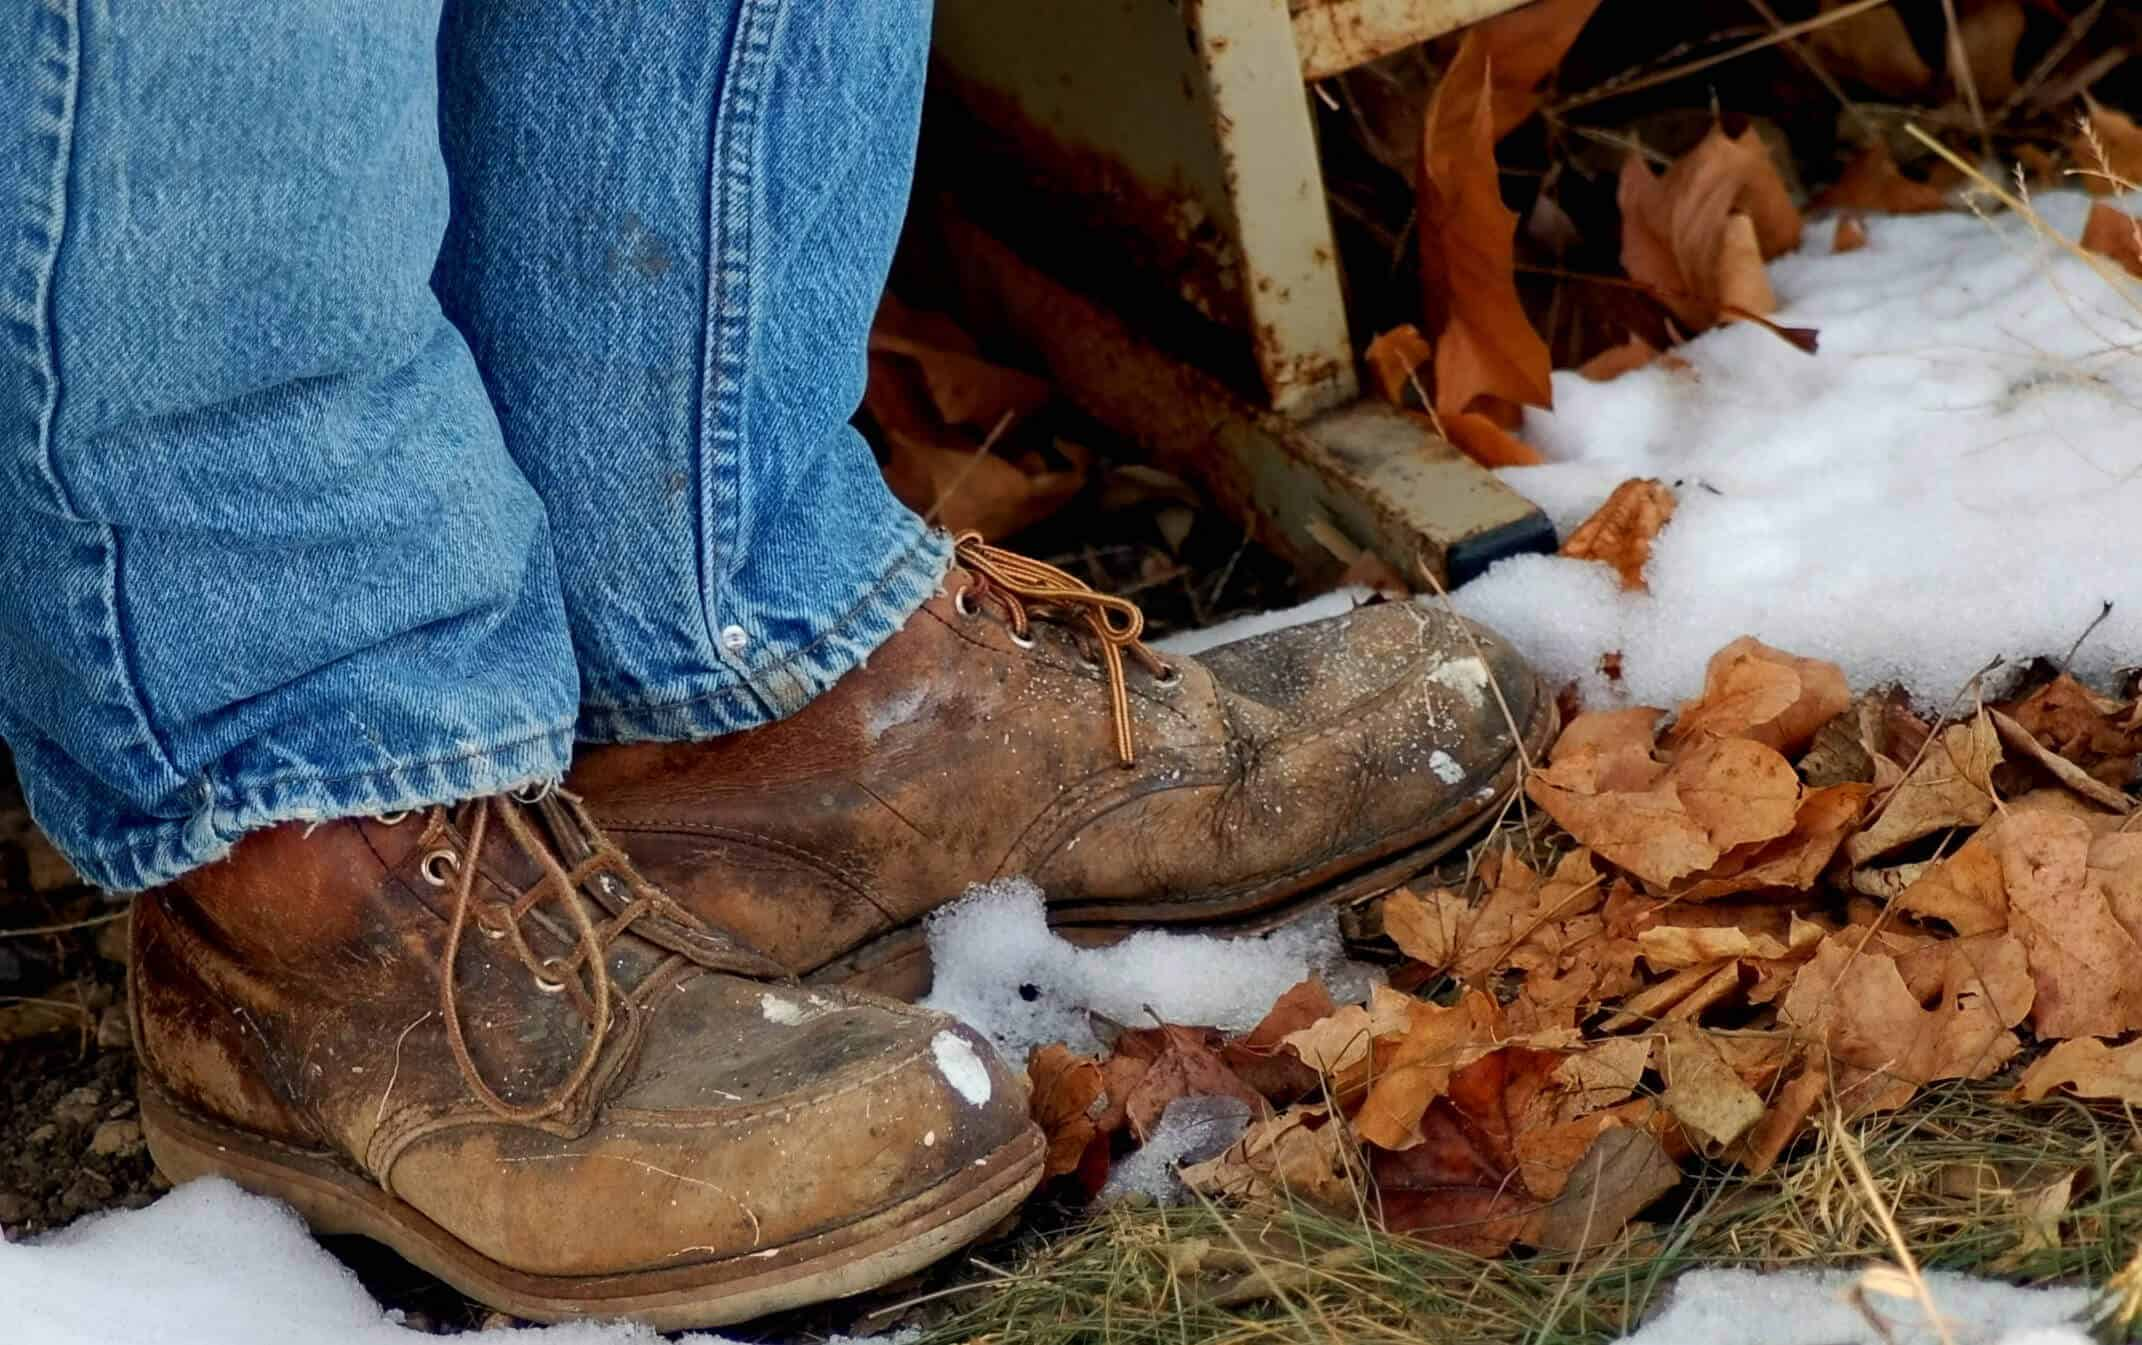 7 Best Ways to Keep Feet Warm in Work Boots